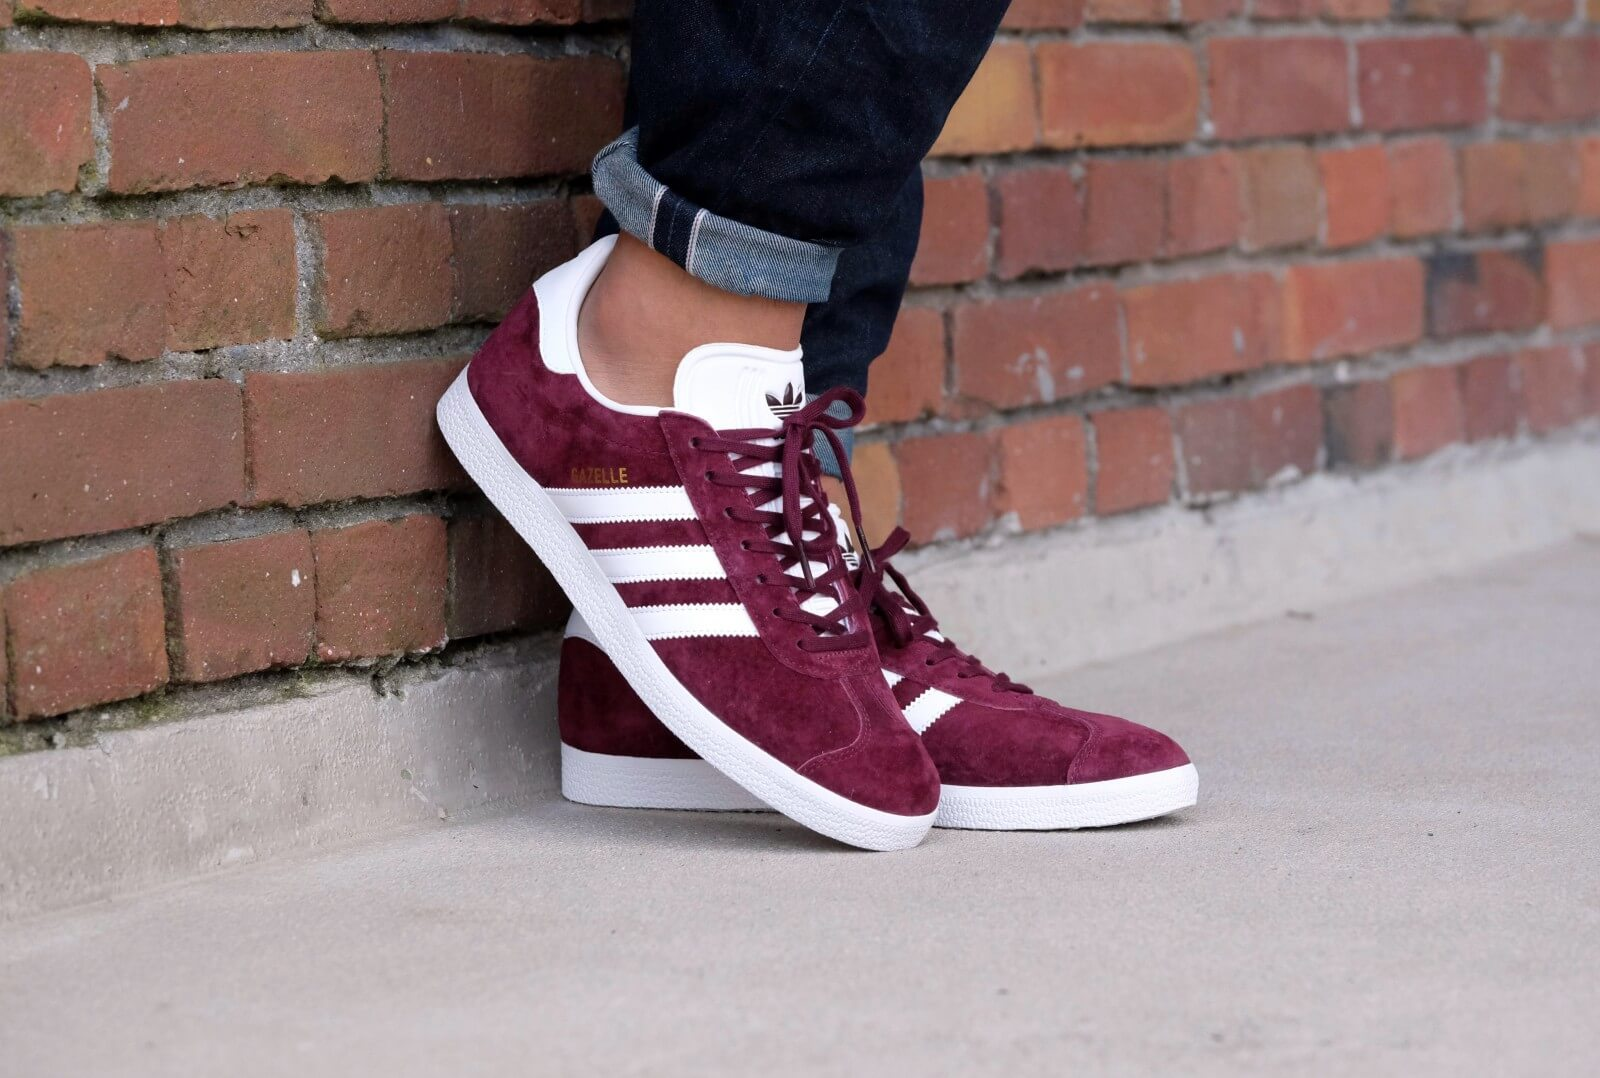 Adidas Gazelle - Maroon / Footwear White / Gold Metallic